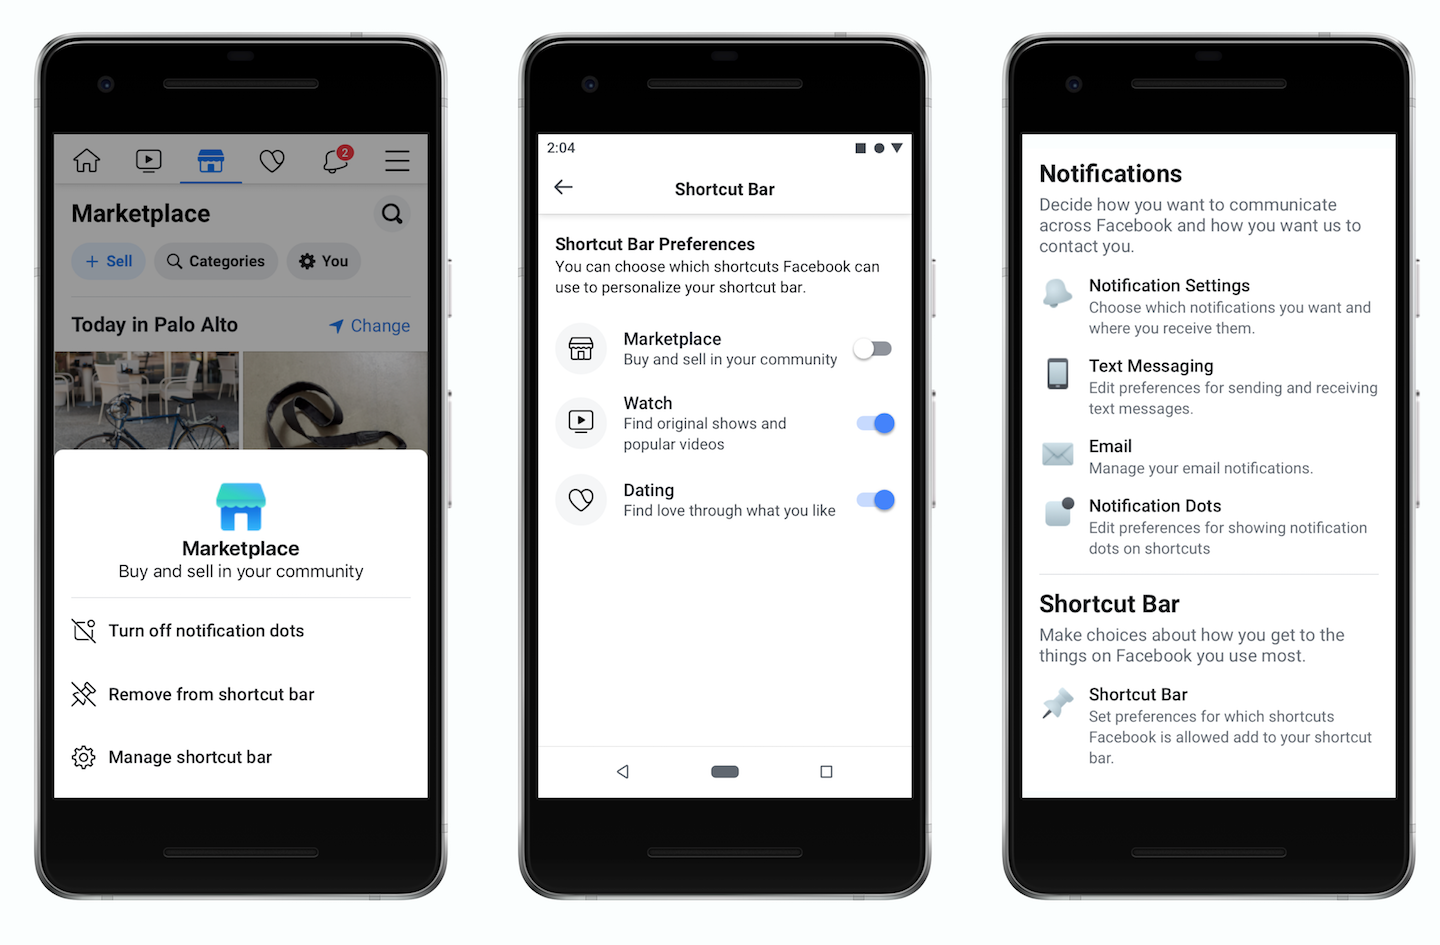 Facebook update lets users remove notification dots, manage navigation bar tabs